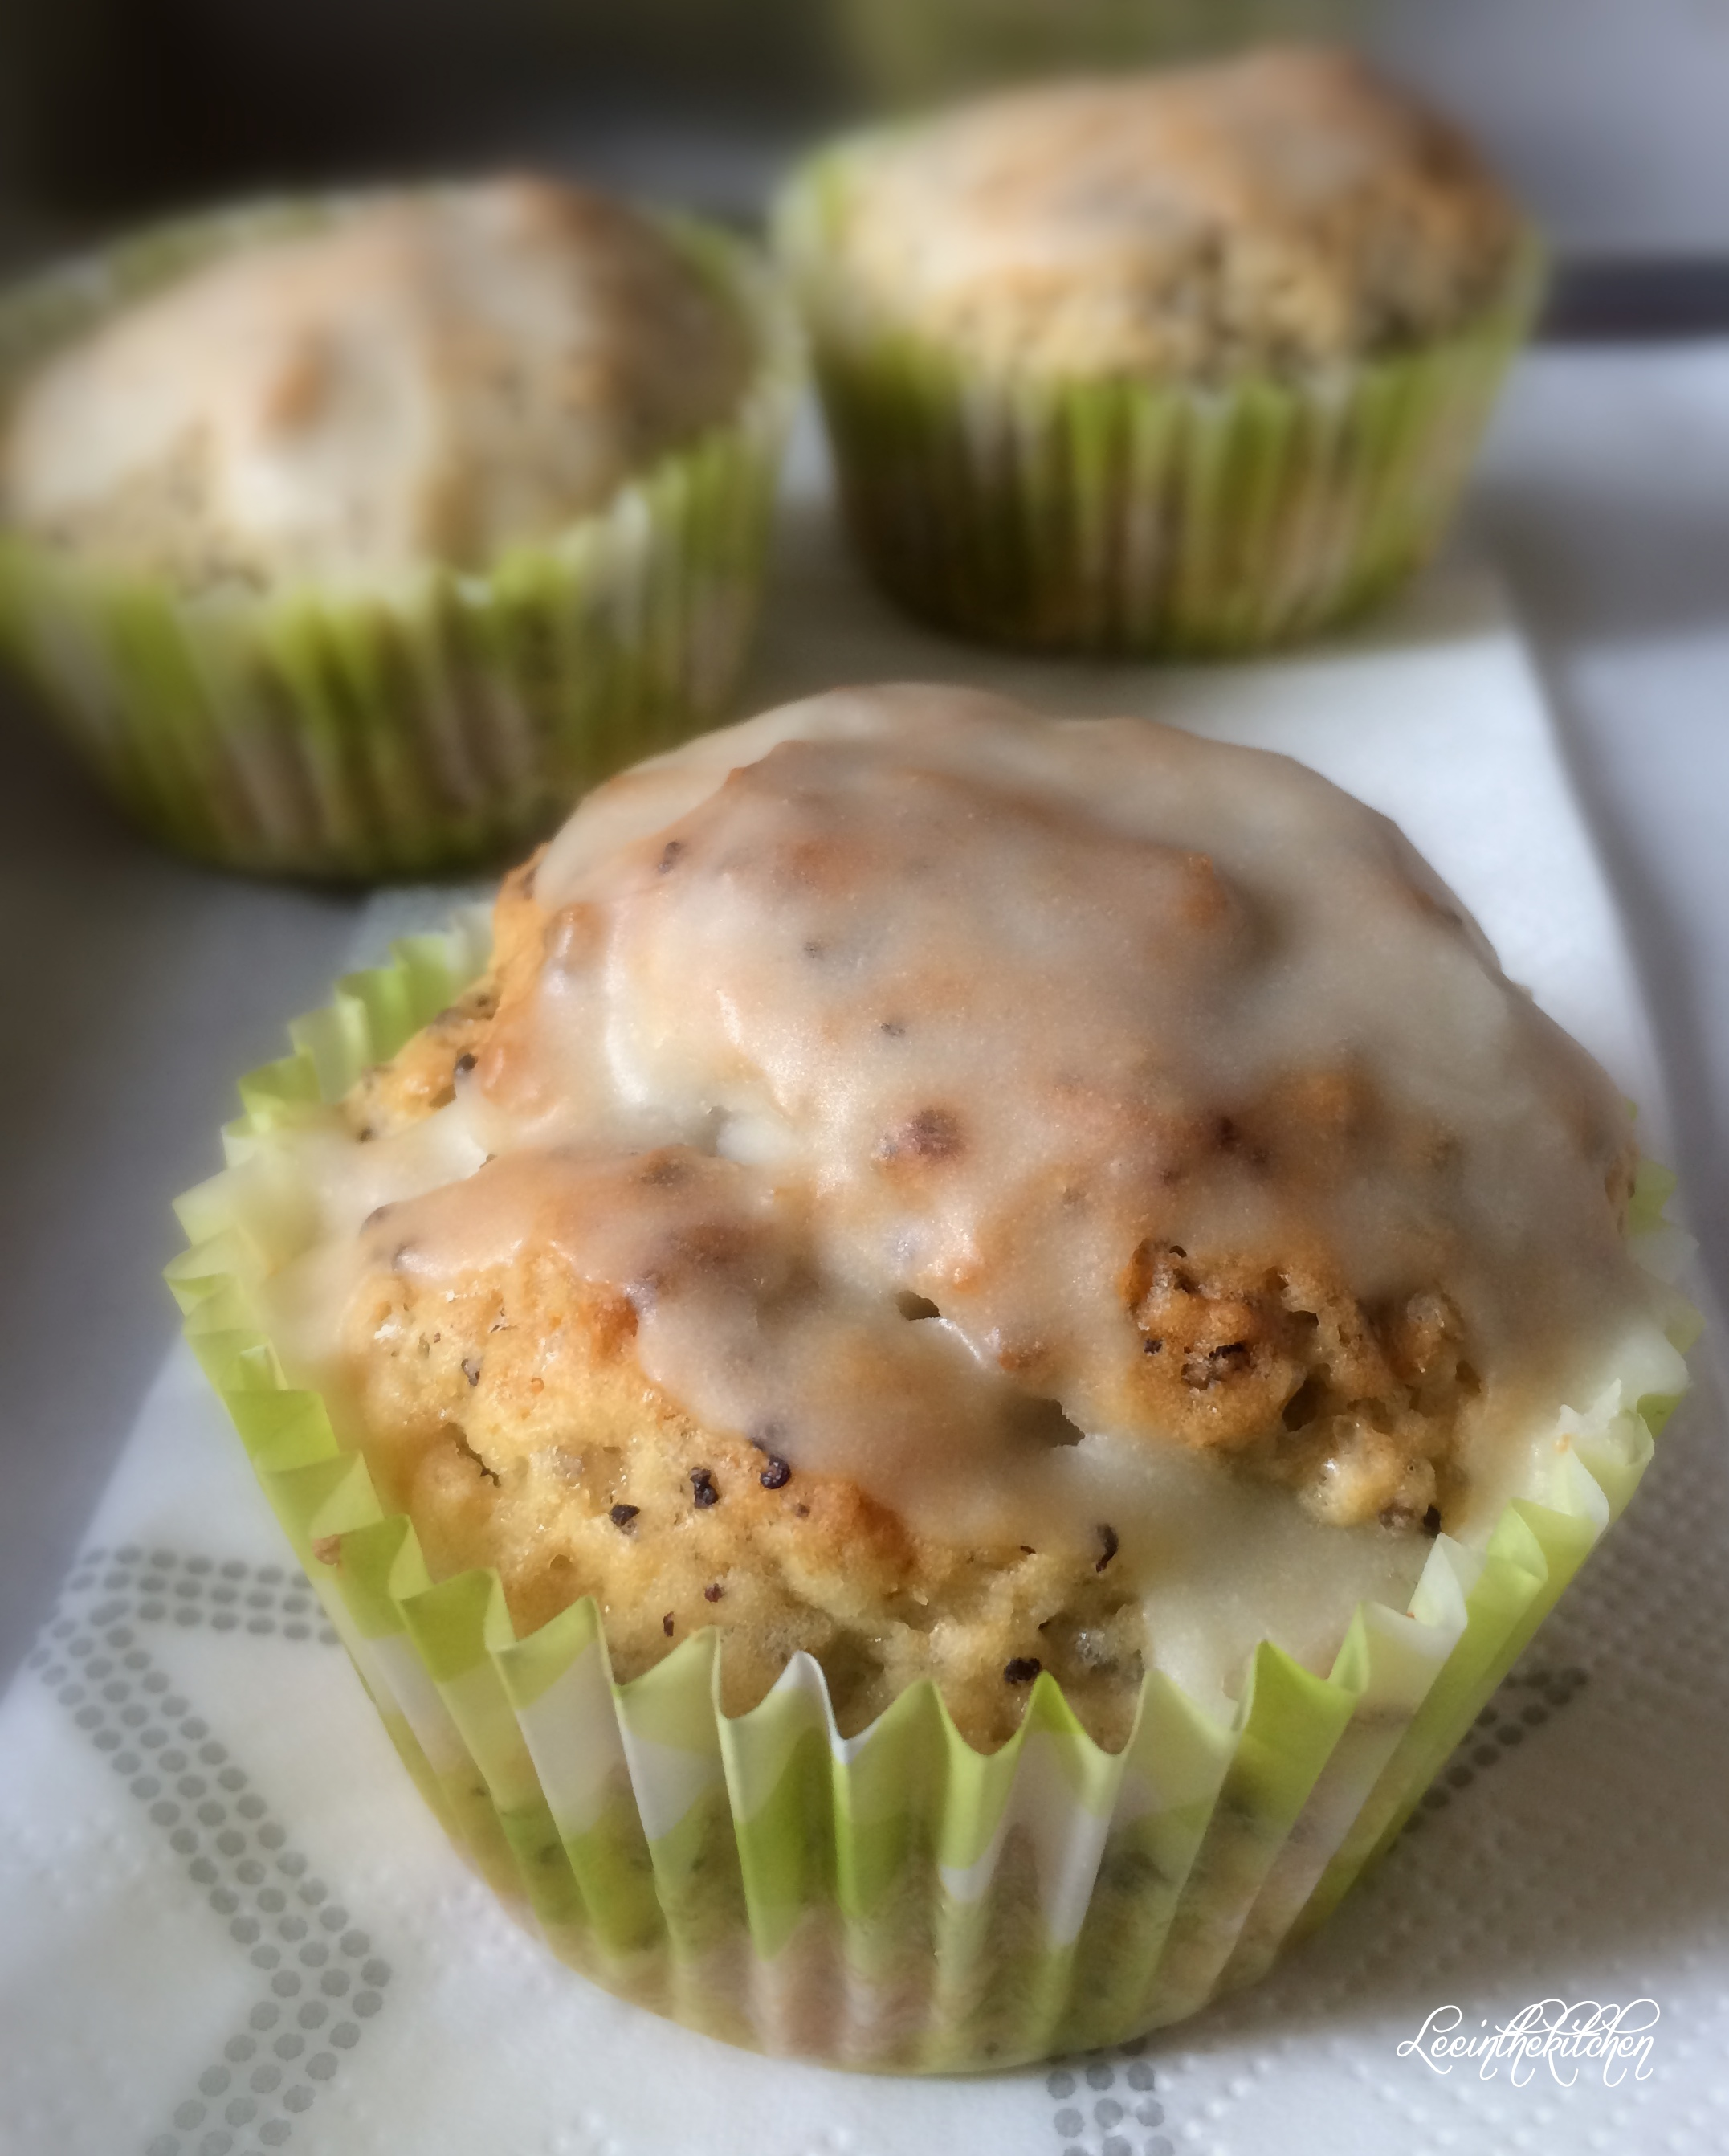 orange chia poppy seed muffins leeinthekitchen. Black Bedroom Furniture Sets. Home Design Ideas